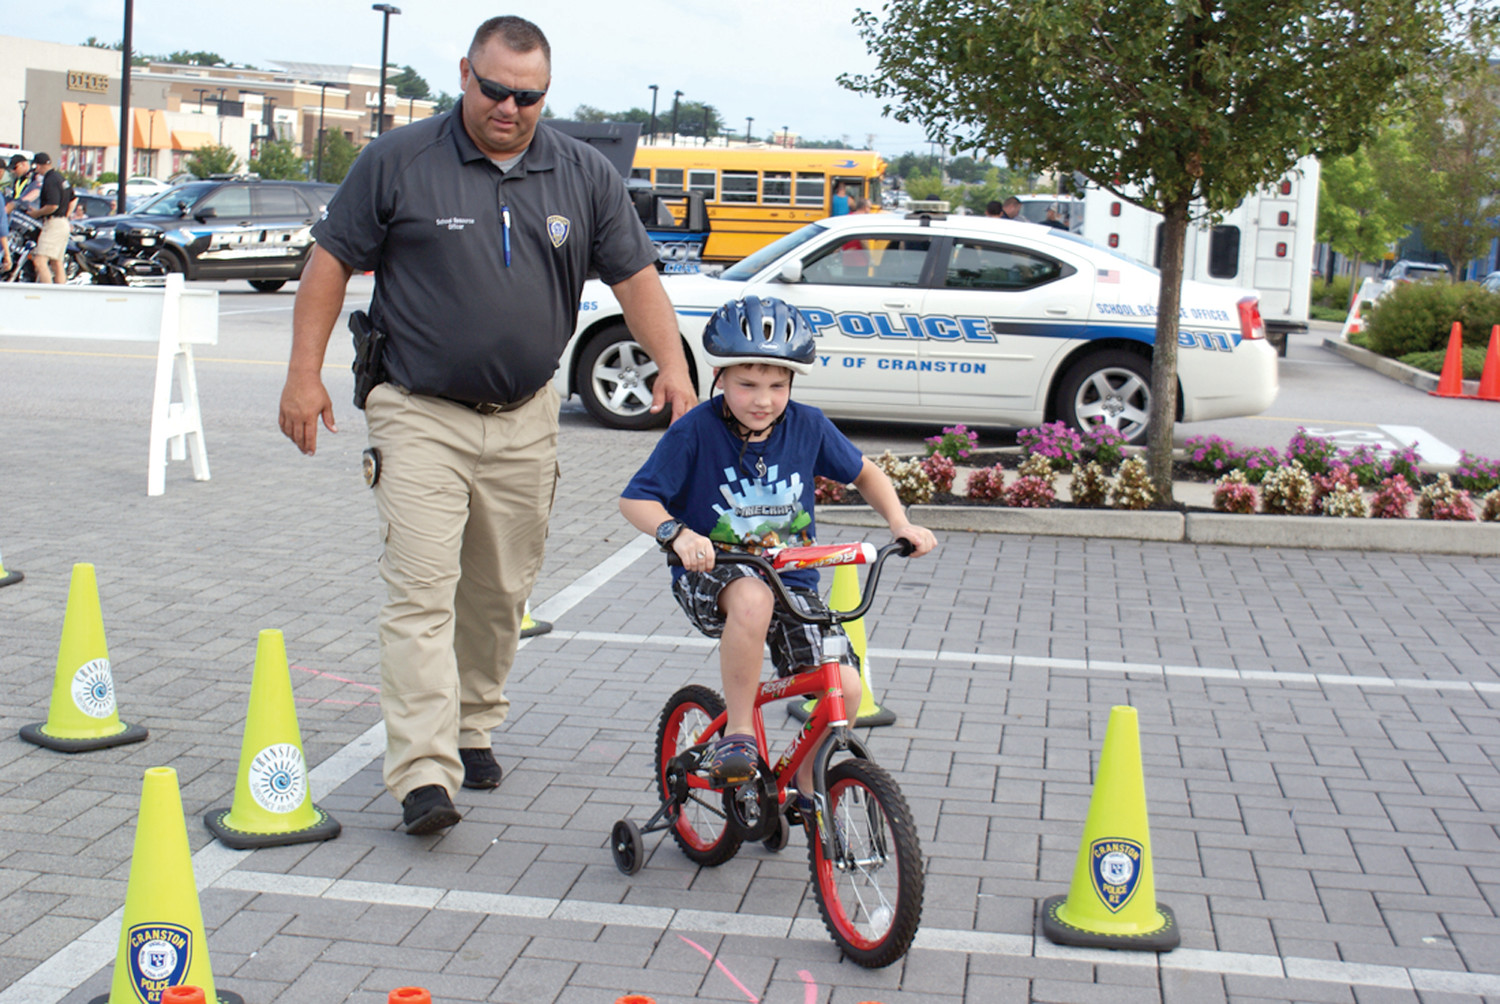 ON THE COURSE: Cranston Police Officer and SRO Matt Davis assisted Norman Trott, age 9, on the bicycle obstacle course set up during National Police Night Out on Aug. 7 in Garden City.